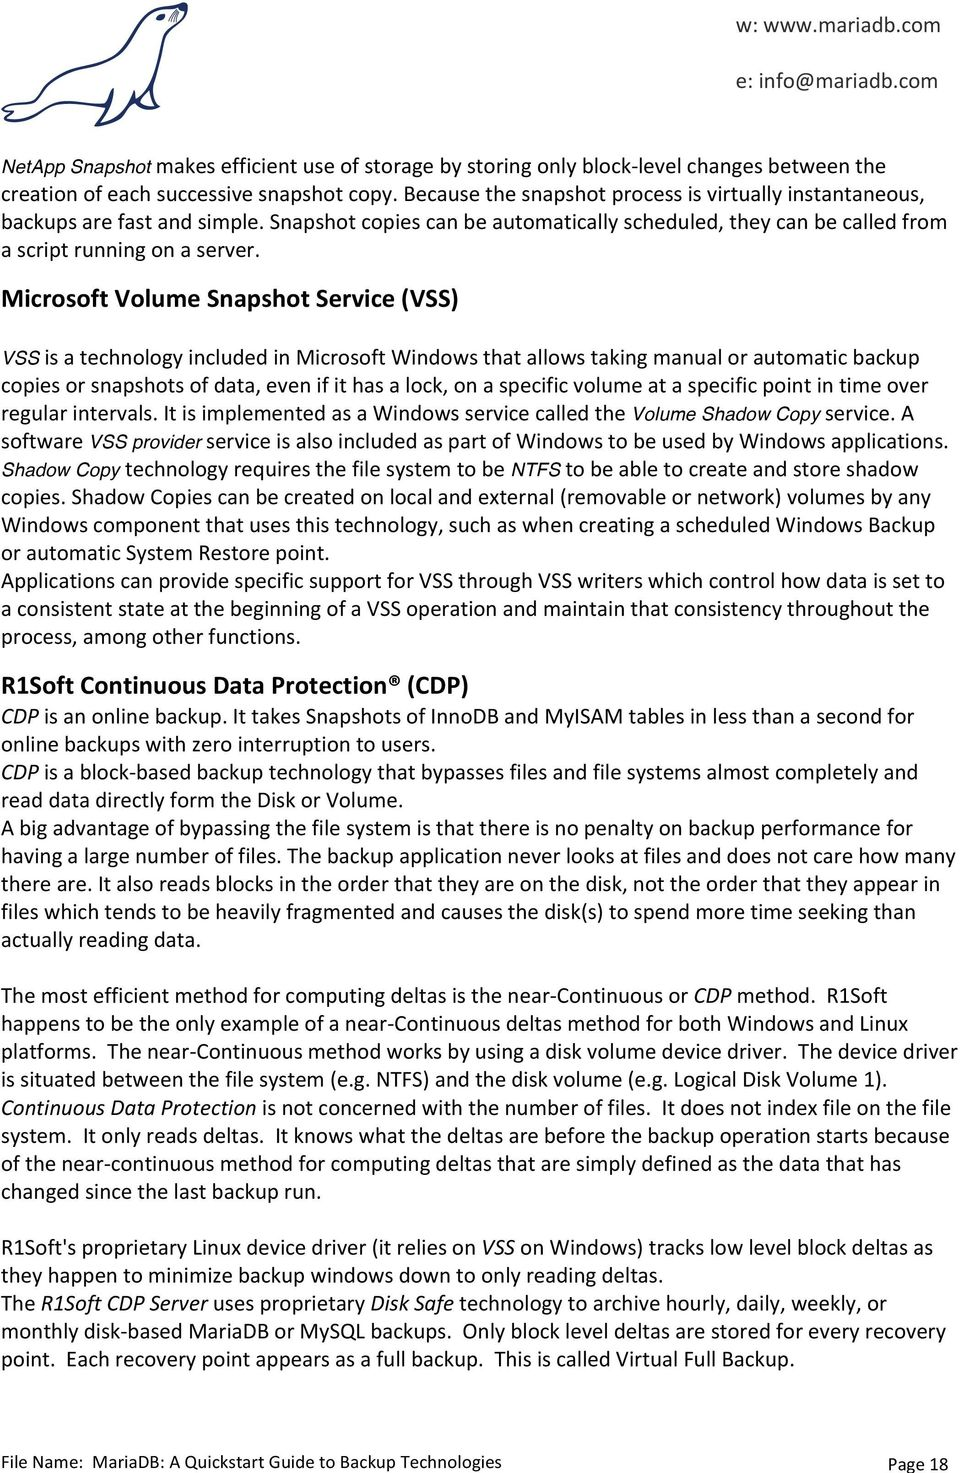 Microsoft Volume Snapshot Service (VSS) VSS is a technology included in Microsoft Windows that allows taking manual or automatic backup copies or snapshots of data, even if it has a lock, on a